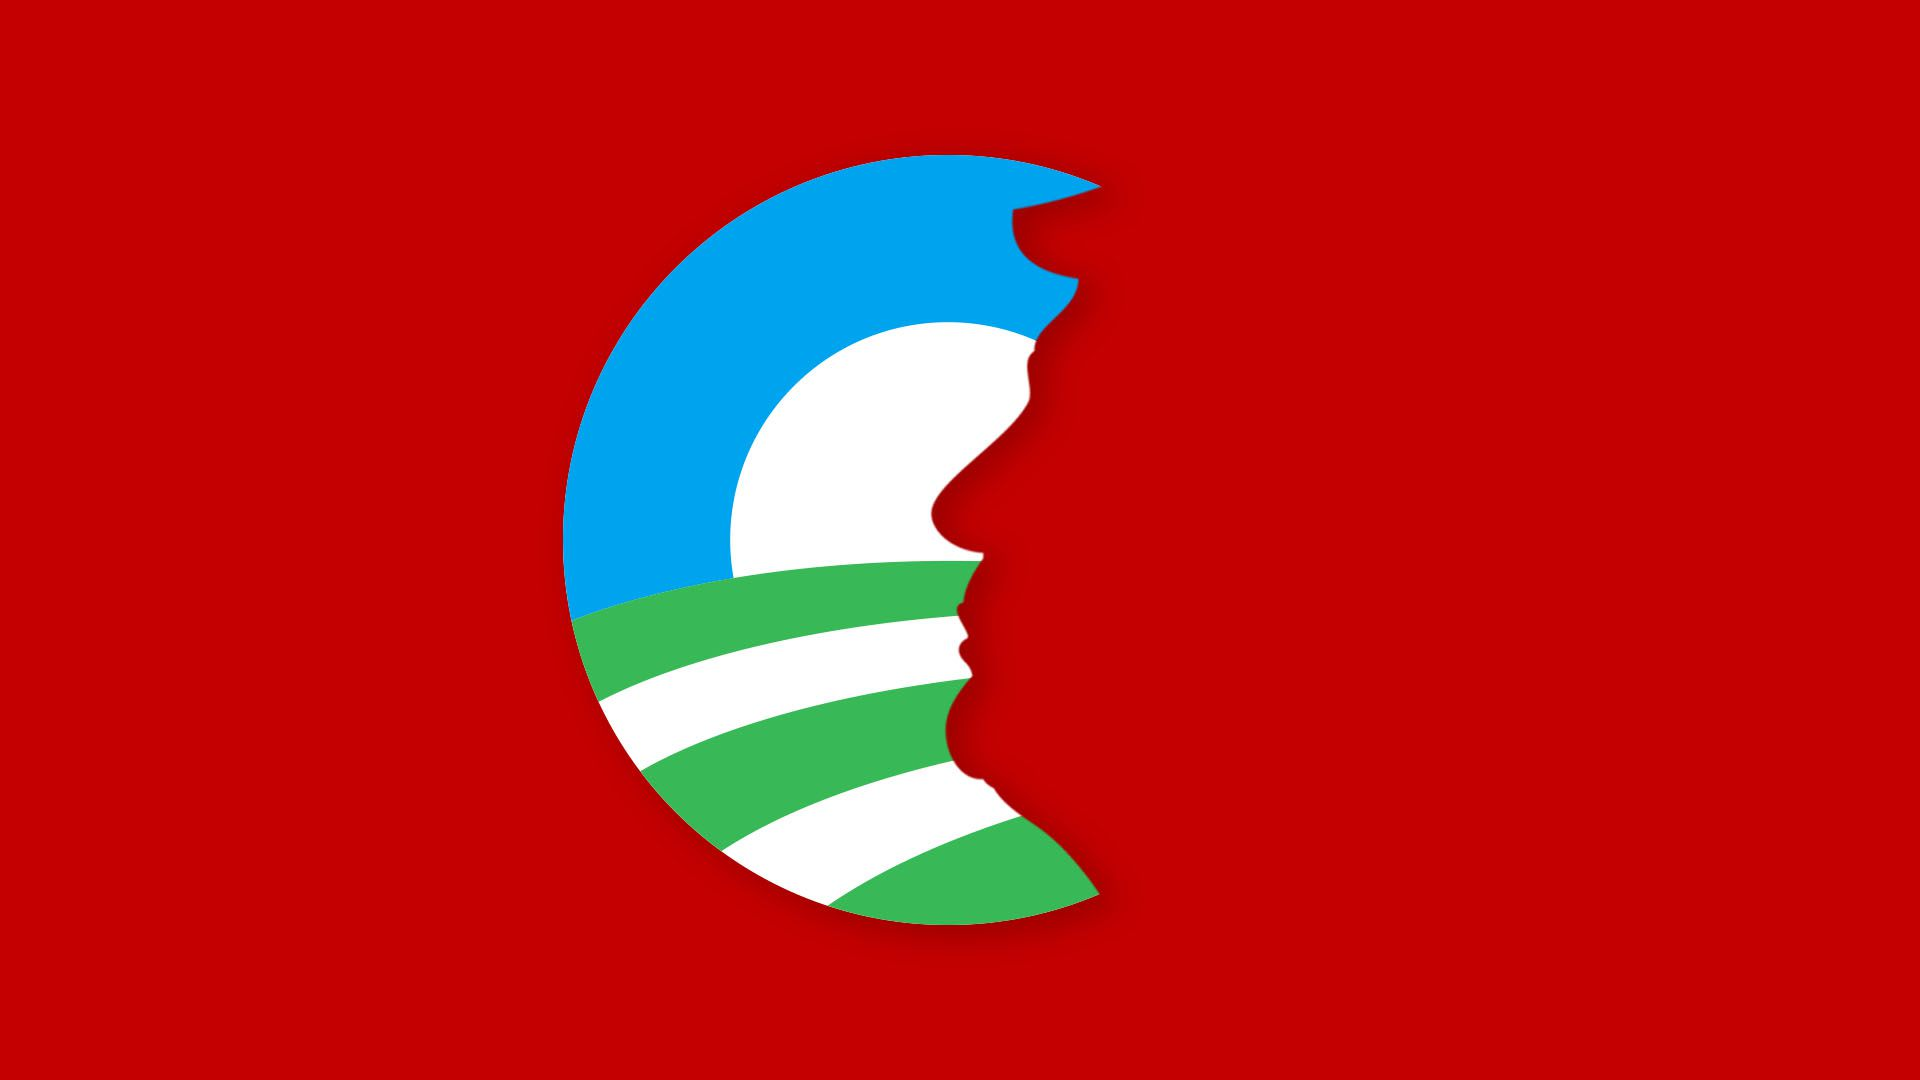 Illustration of green Obama logo with a cutout in the shape of Trump's face